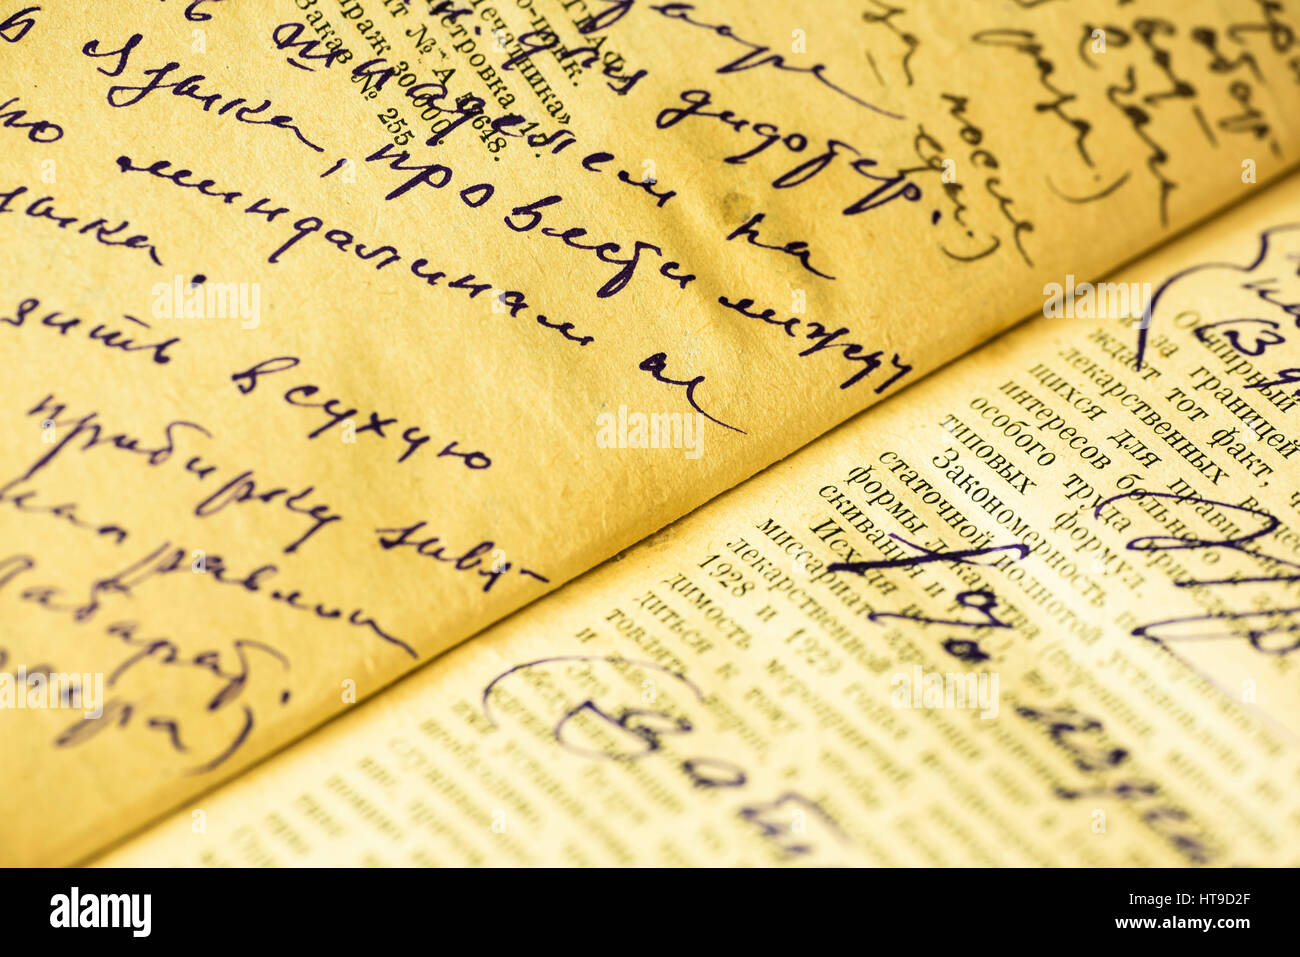 Old sheet of paper with a written ink recipe by hand - Stock Image